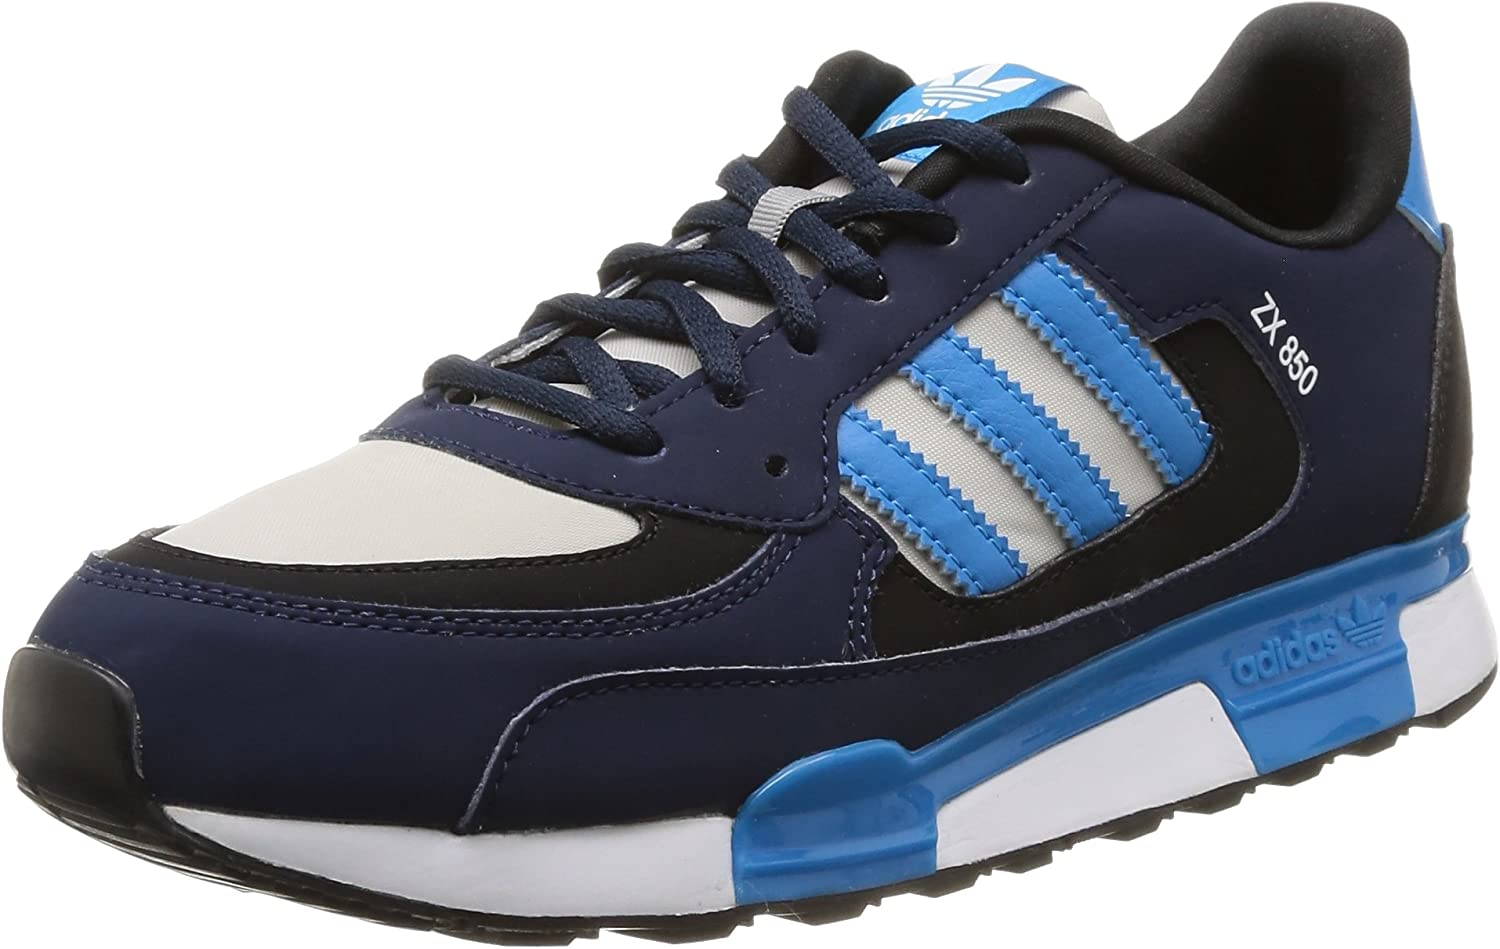 ADIDAS M19734, Boys Running shoes